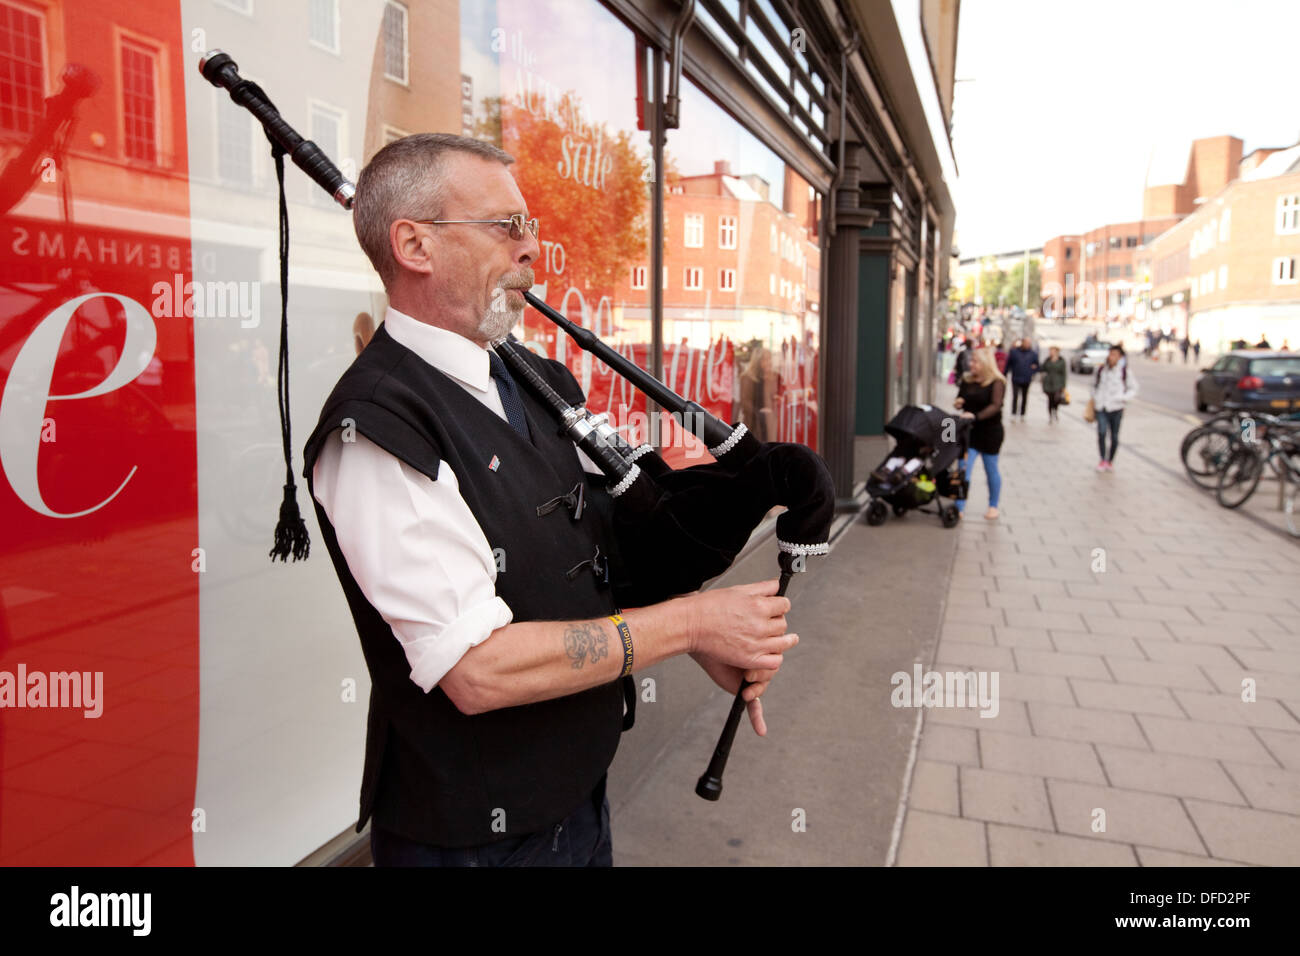 Street entertainer or busker, playing the bagpipes, Norwich, Norfolk UK - Stock Image